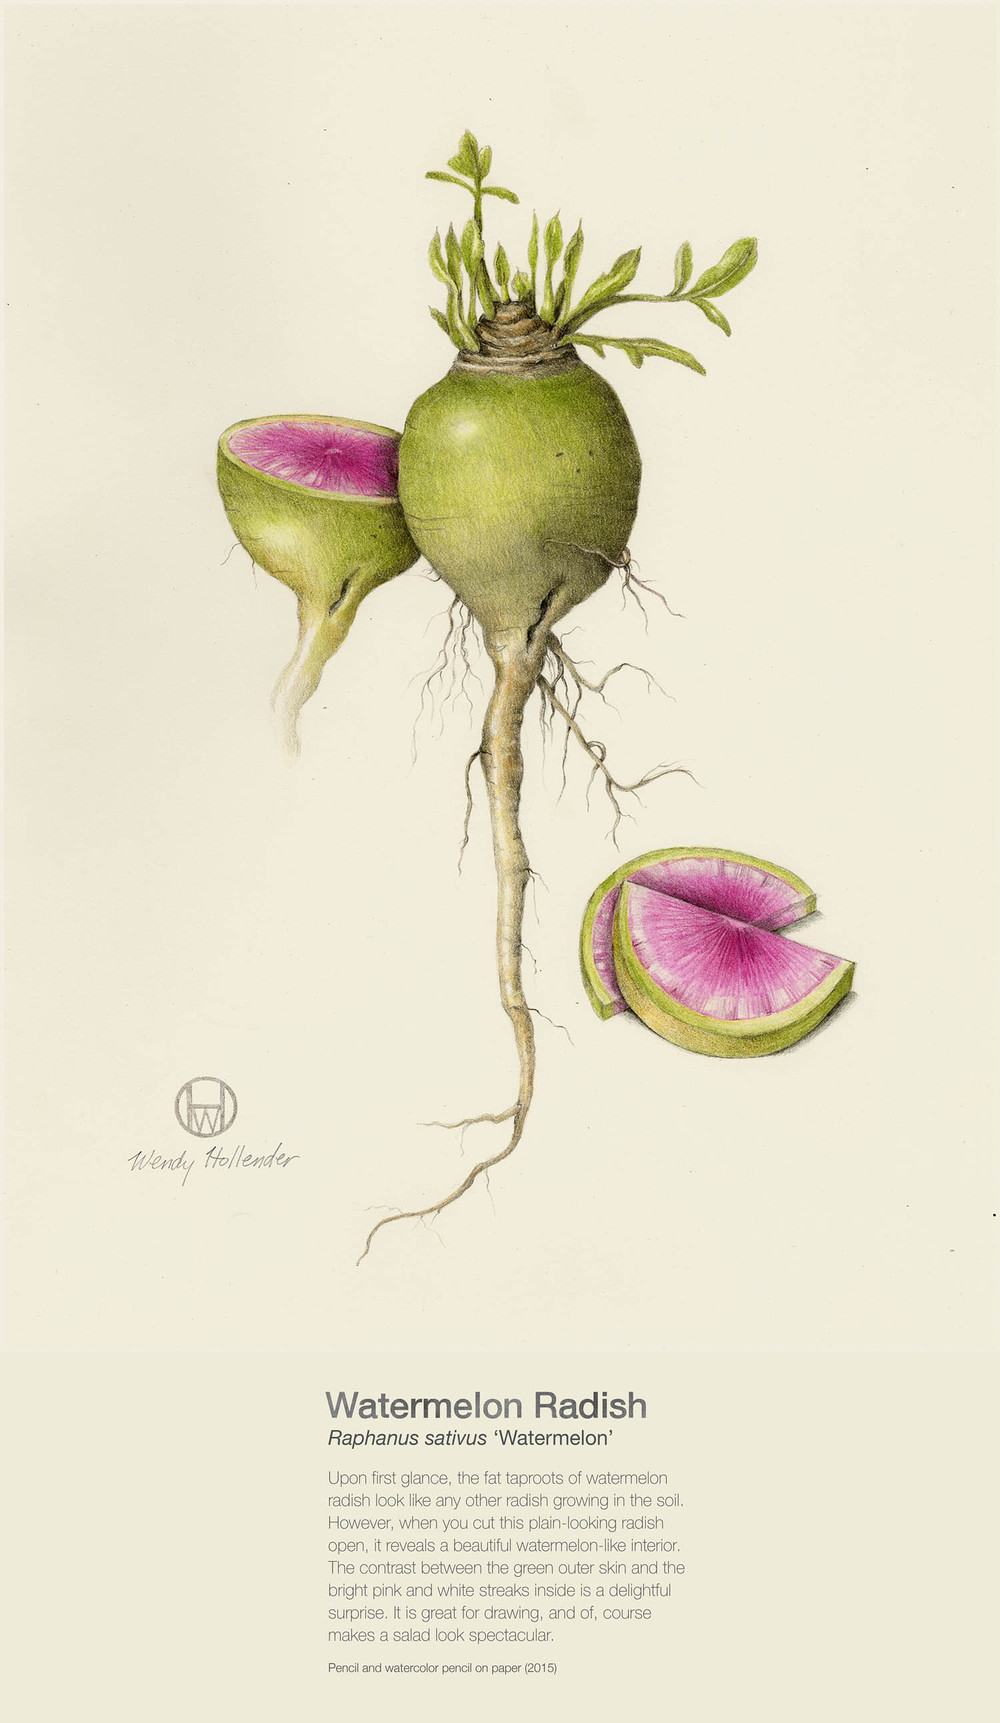 Watermelon Radish - Raphanus sativus 'Watermelon'